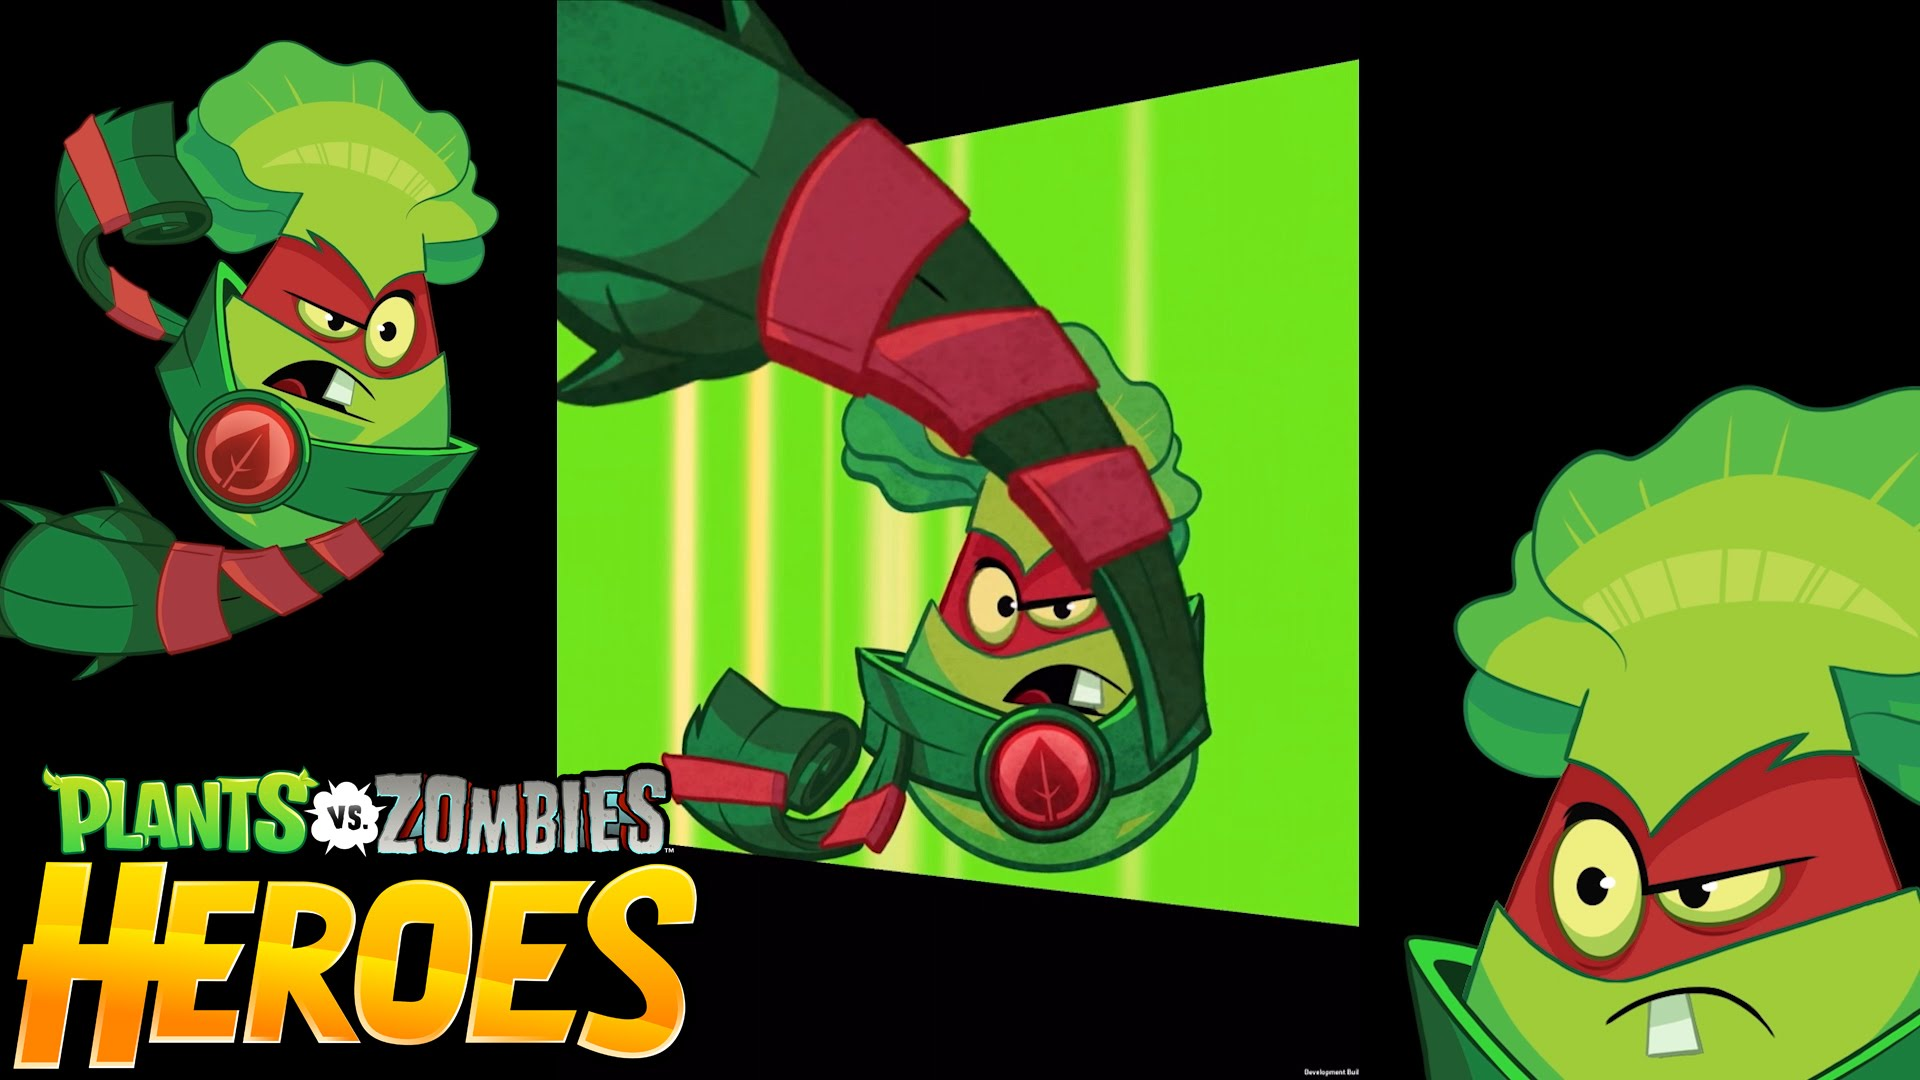 Angry Birds Playing Card Deck And Vector Characters: Plants Vs Zombies Heroes Will Be A Card Game